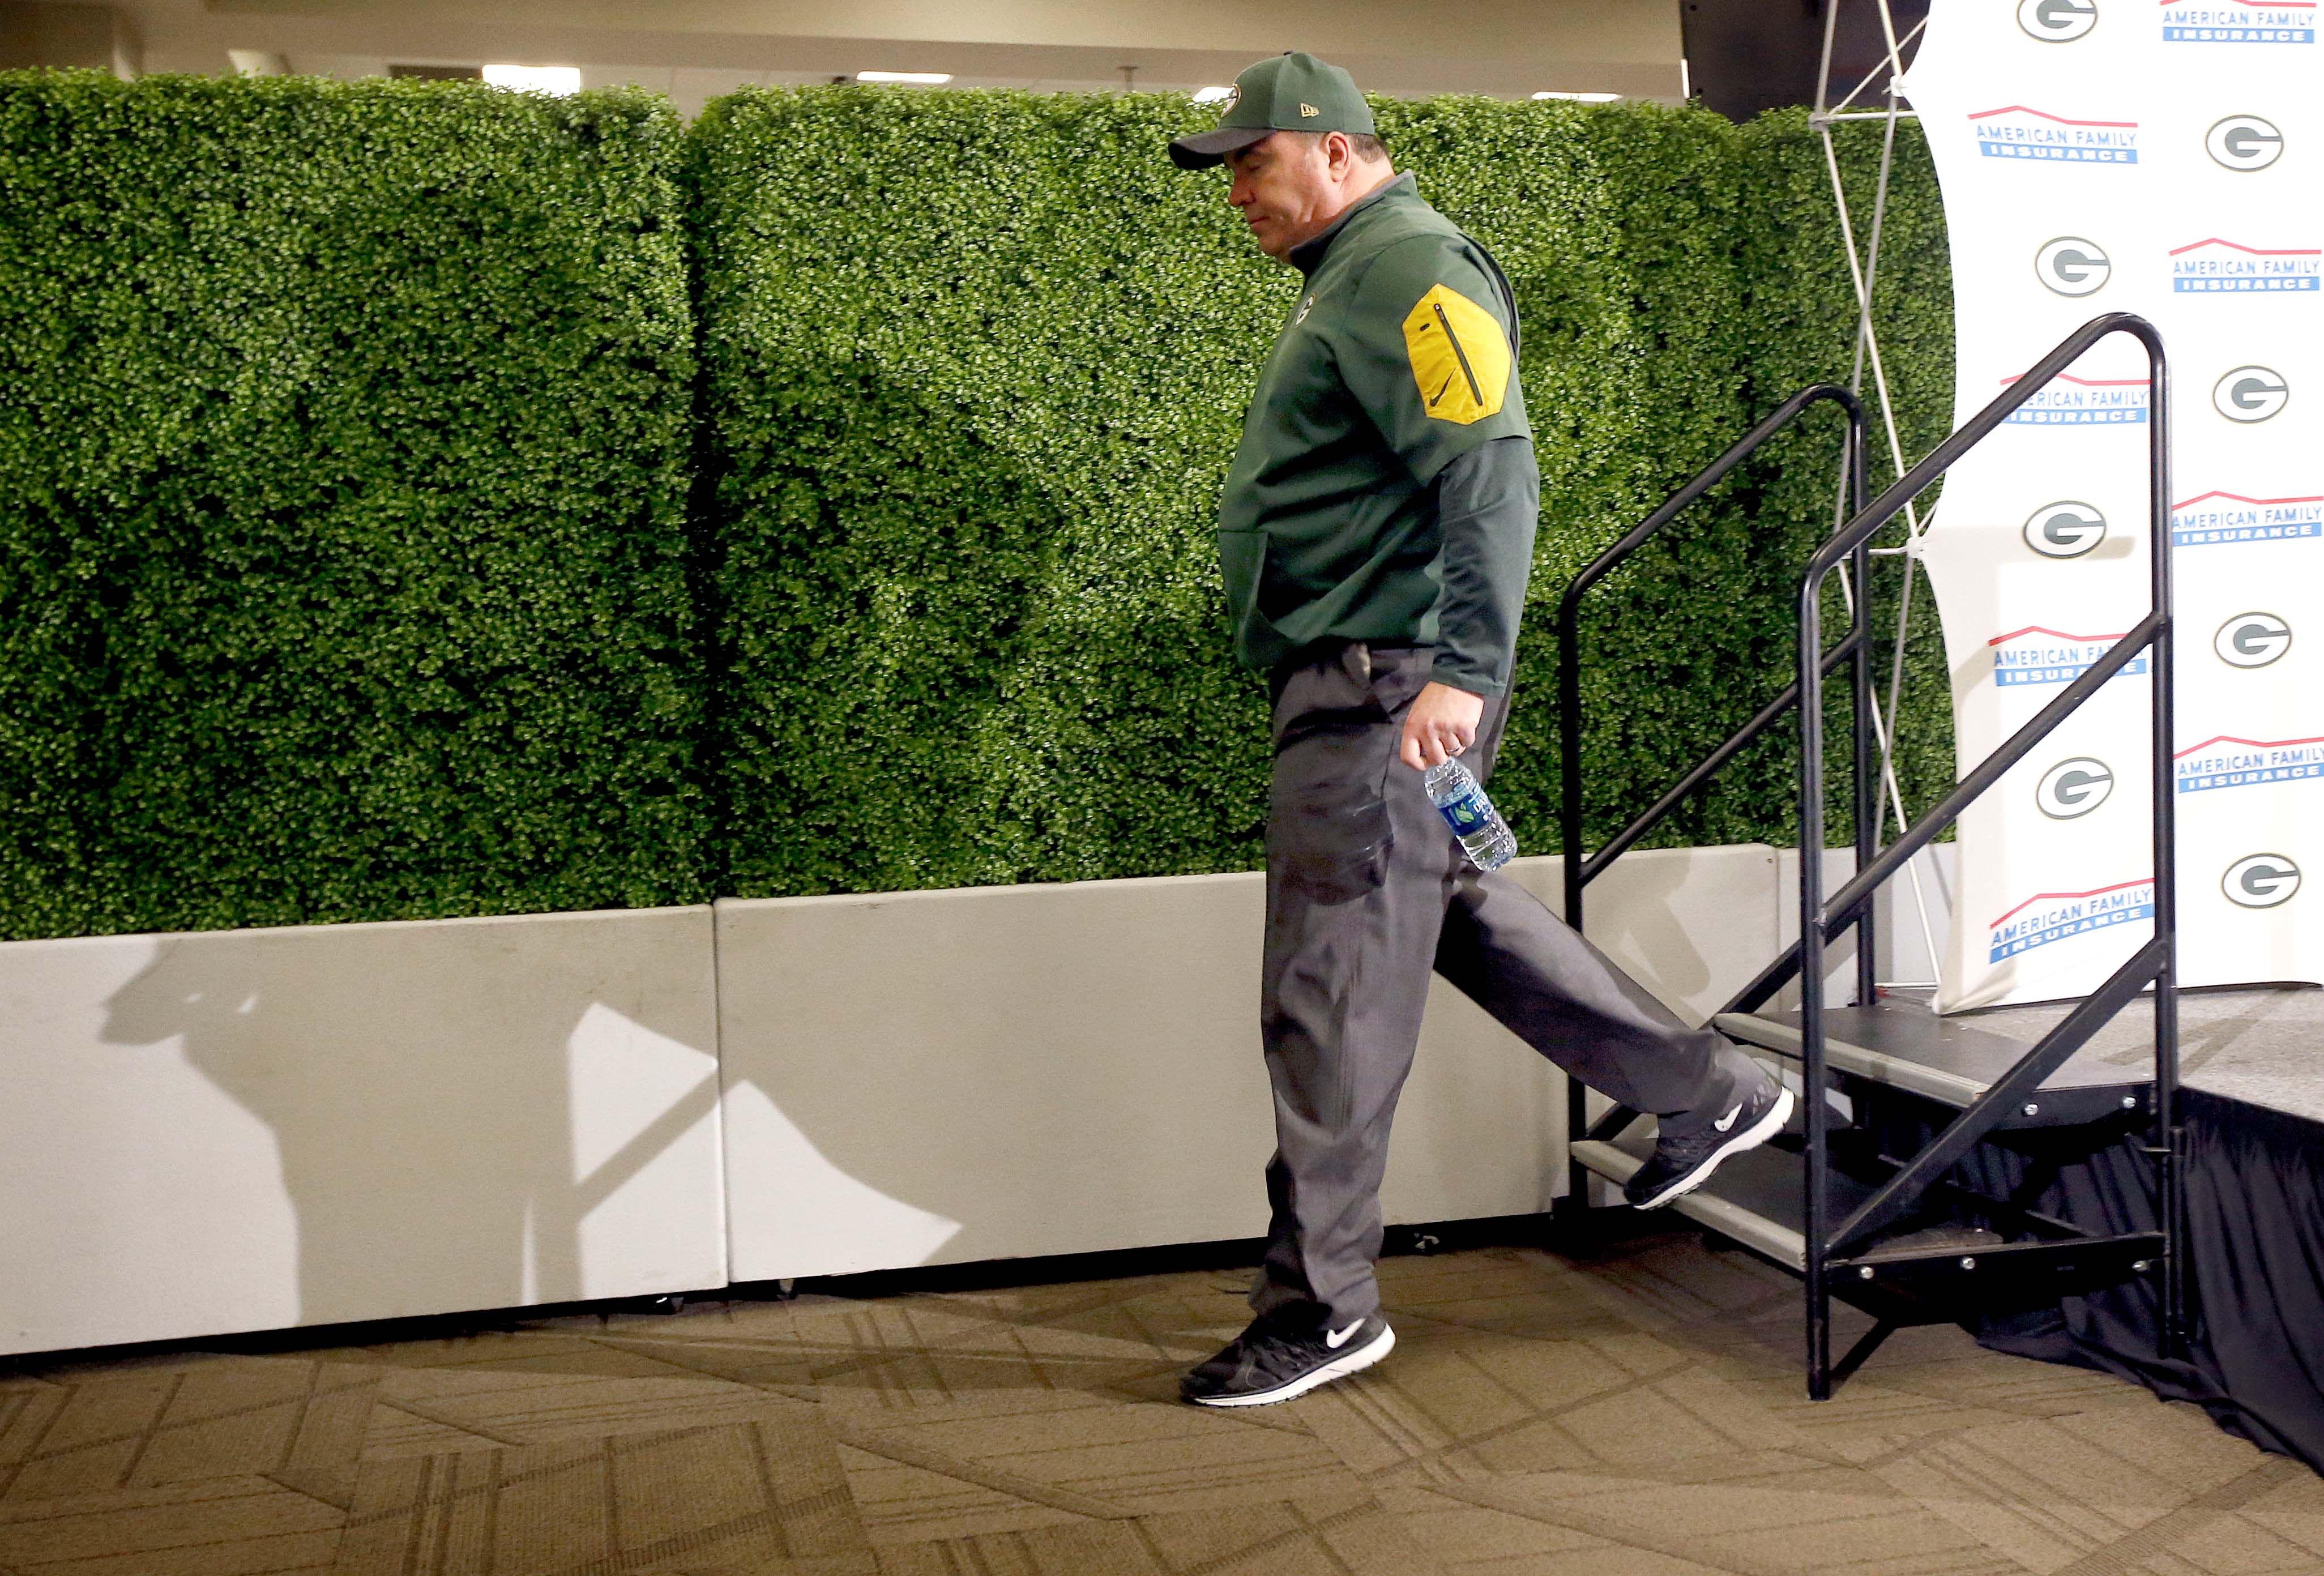 Green Bay Packers head coach Mike McCarthy leaves the podium after speaking to the media after an NFL divisional playoff football game against the Arizona Cardinals, Saturday, Jan. 16, 2016, in Glendale, Ariz. The Cardinals won 26-20 in overtime. (AP Phot